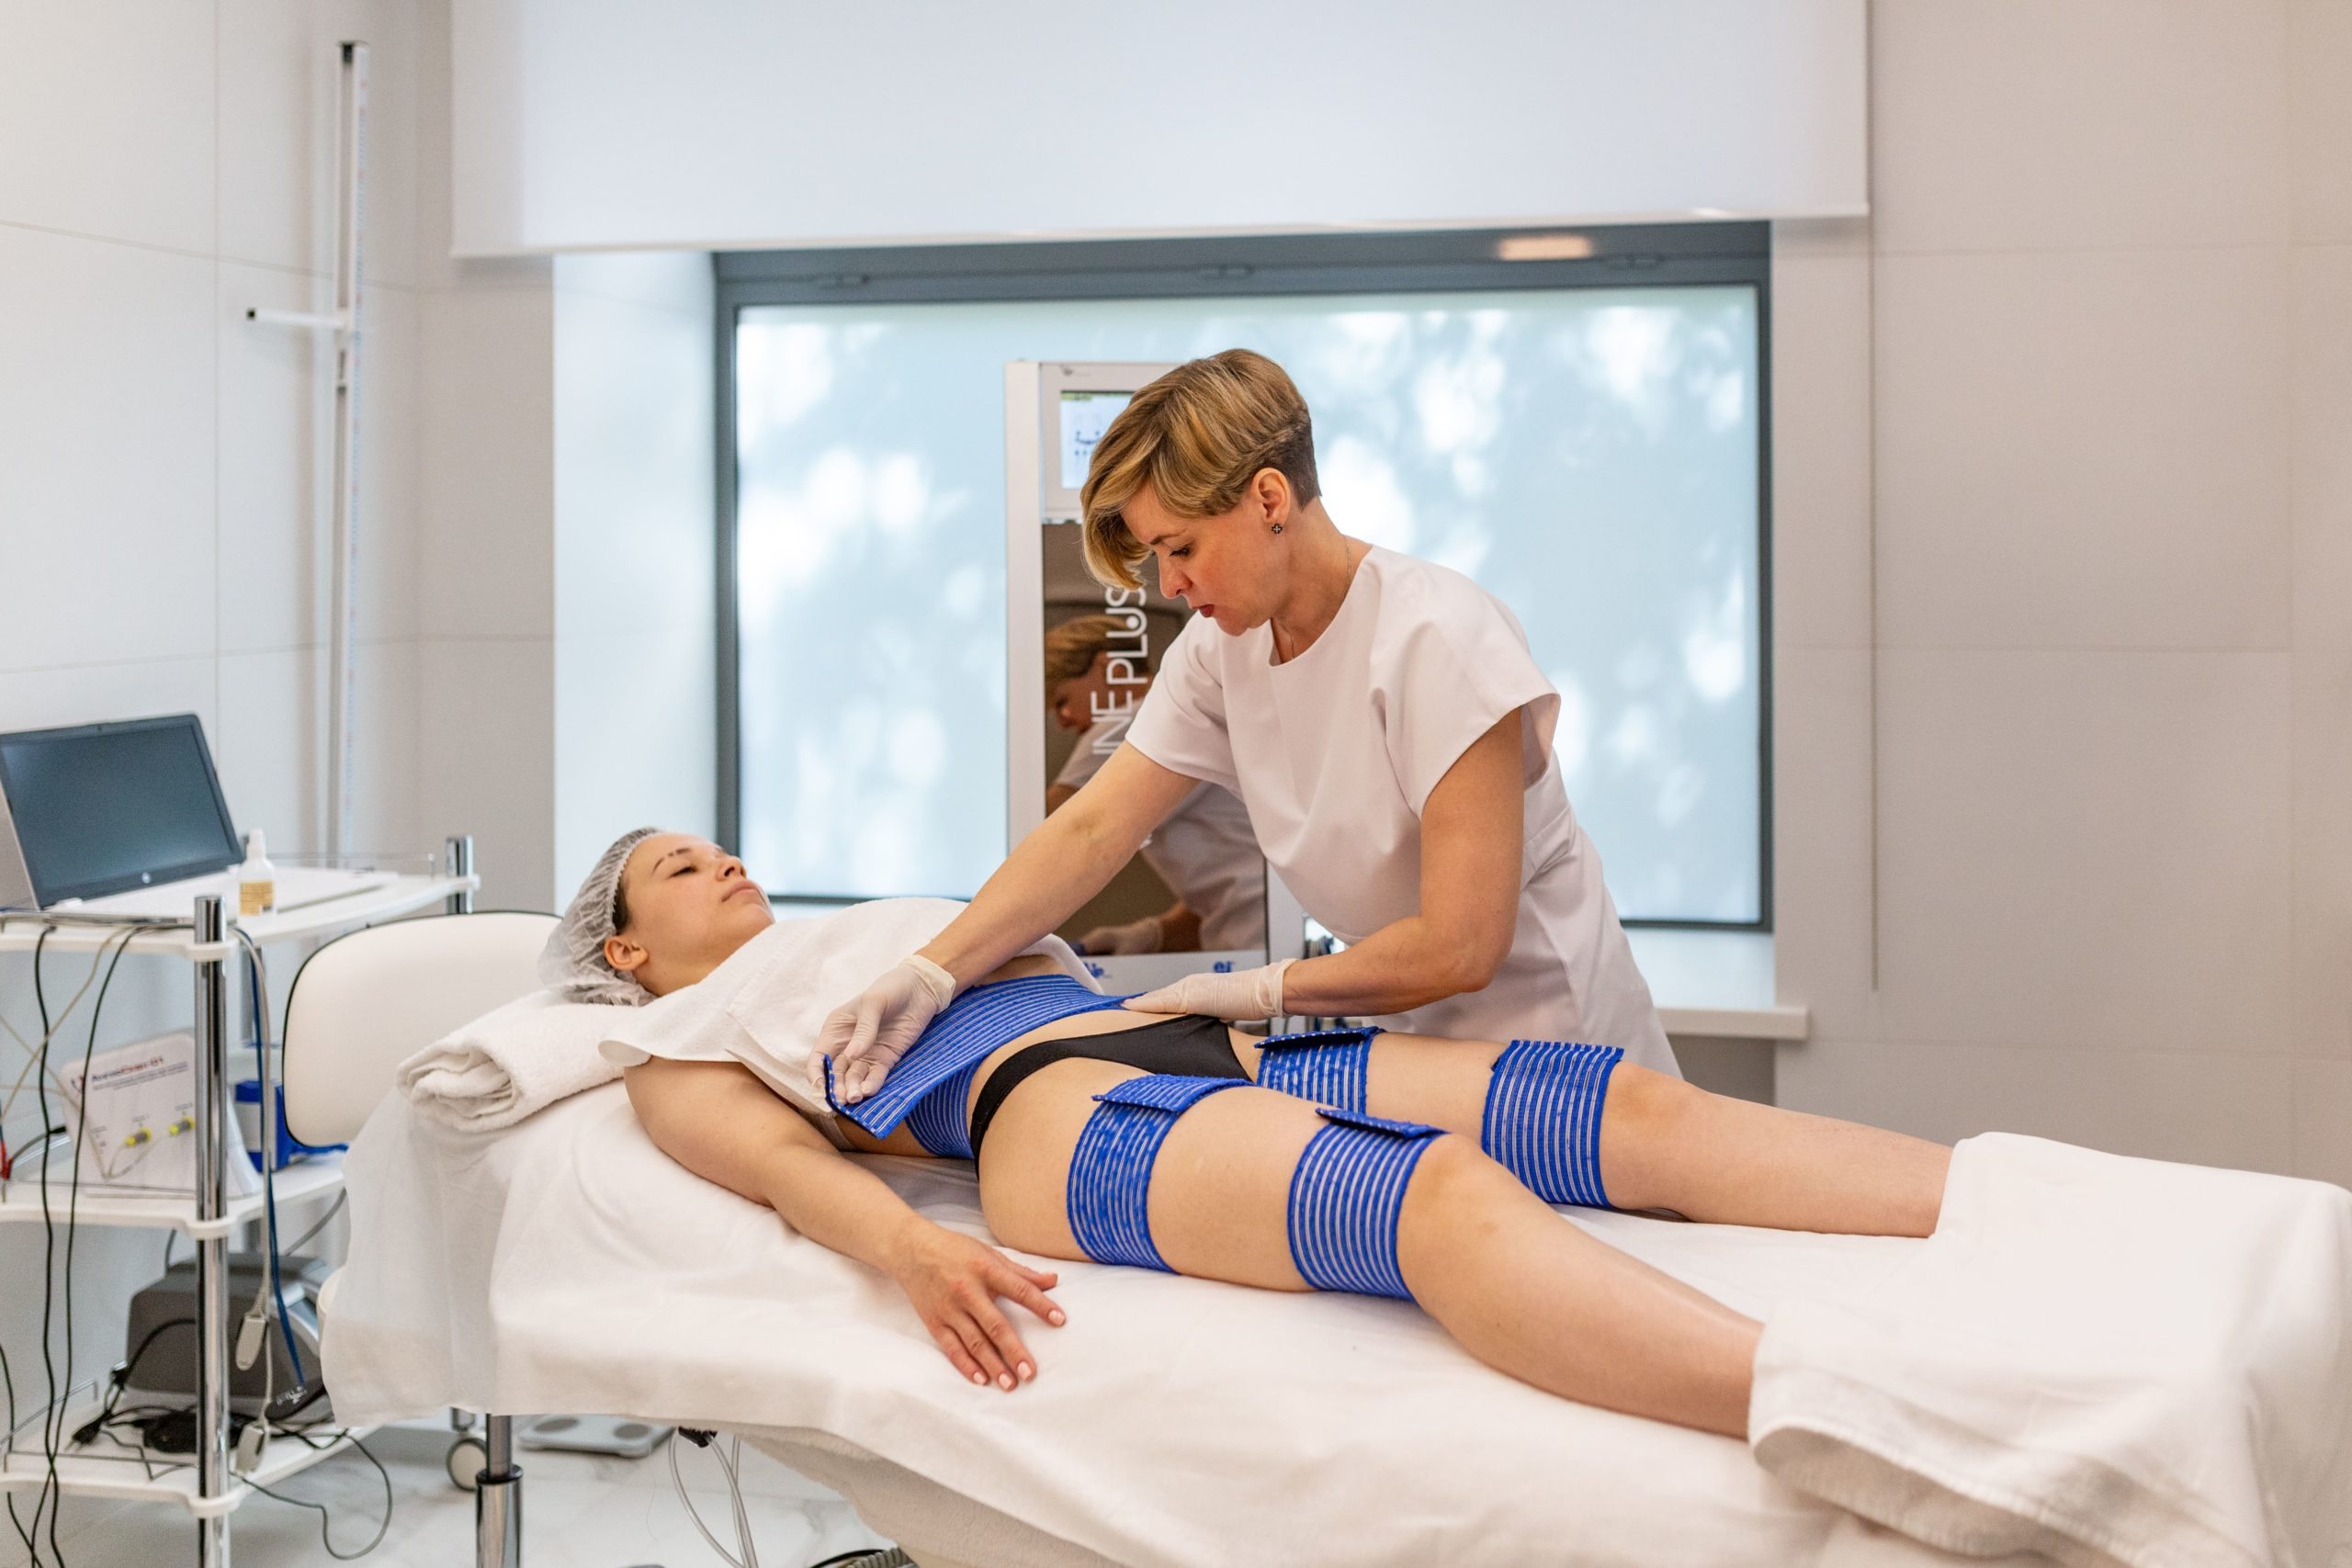 Does Electrical Myostimulation Reduce Your Recovery Time?